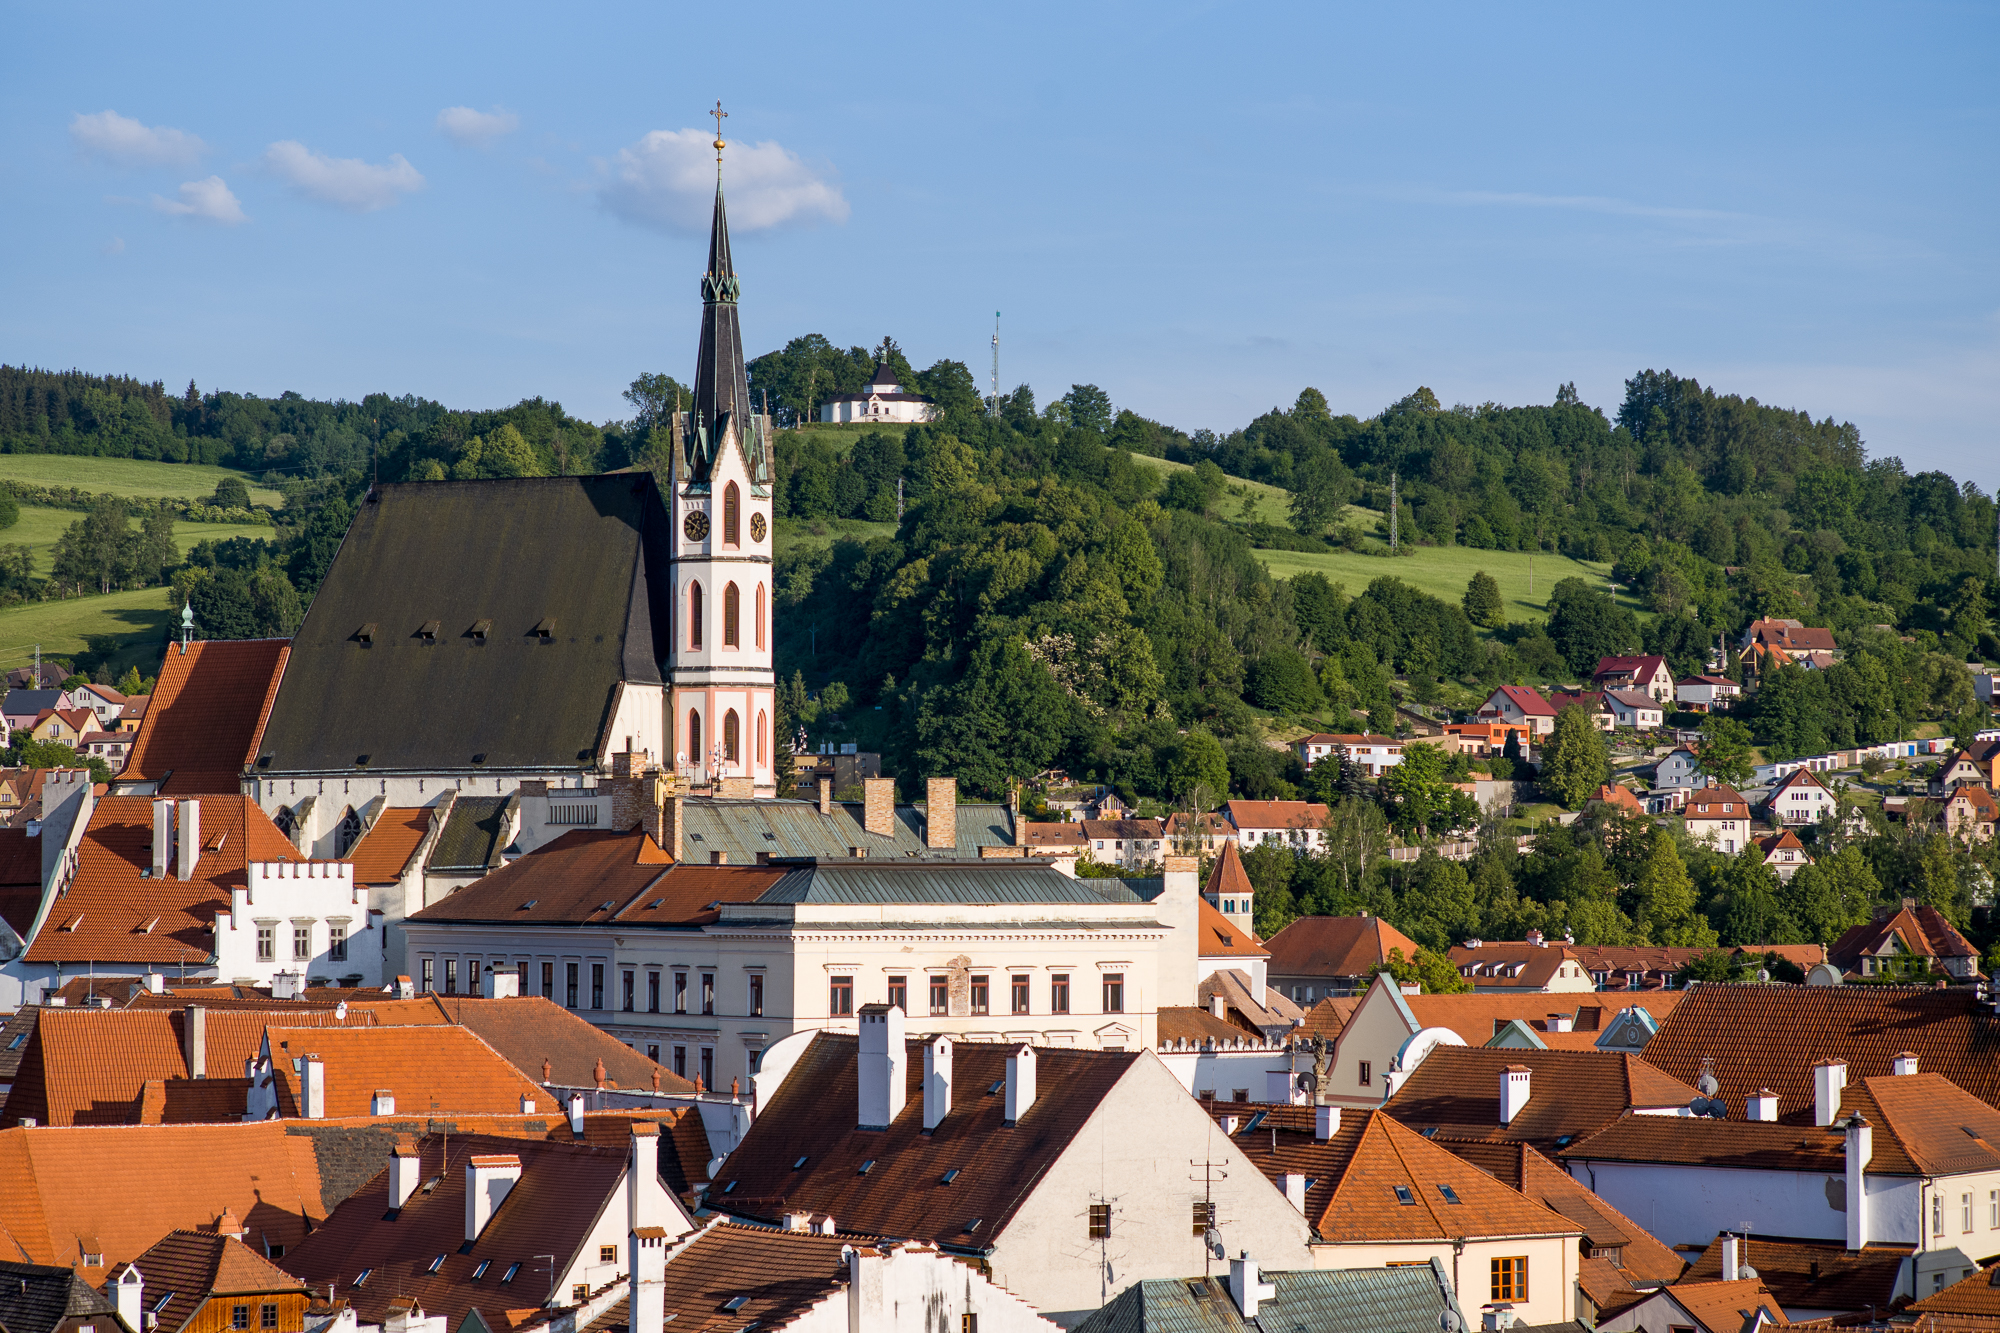 The village of Cesky Krumlov as seen from the castle walls